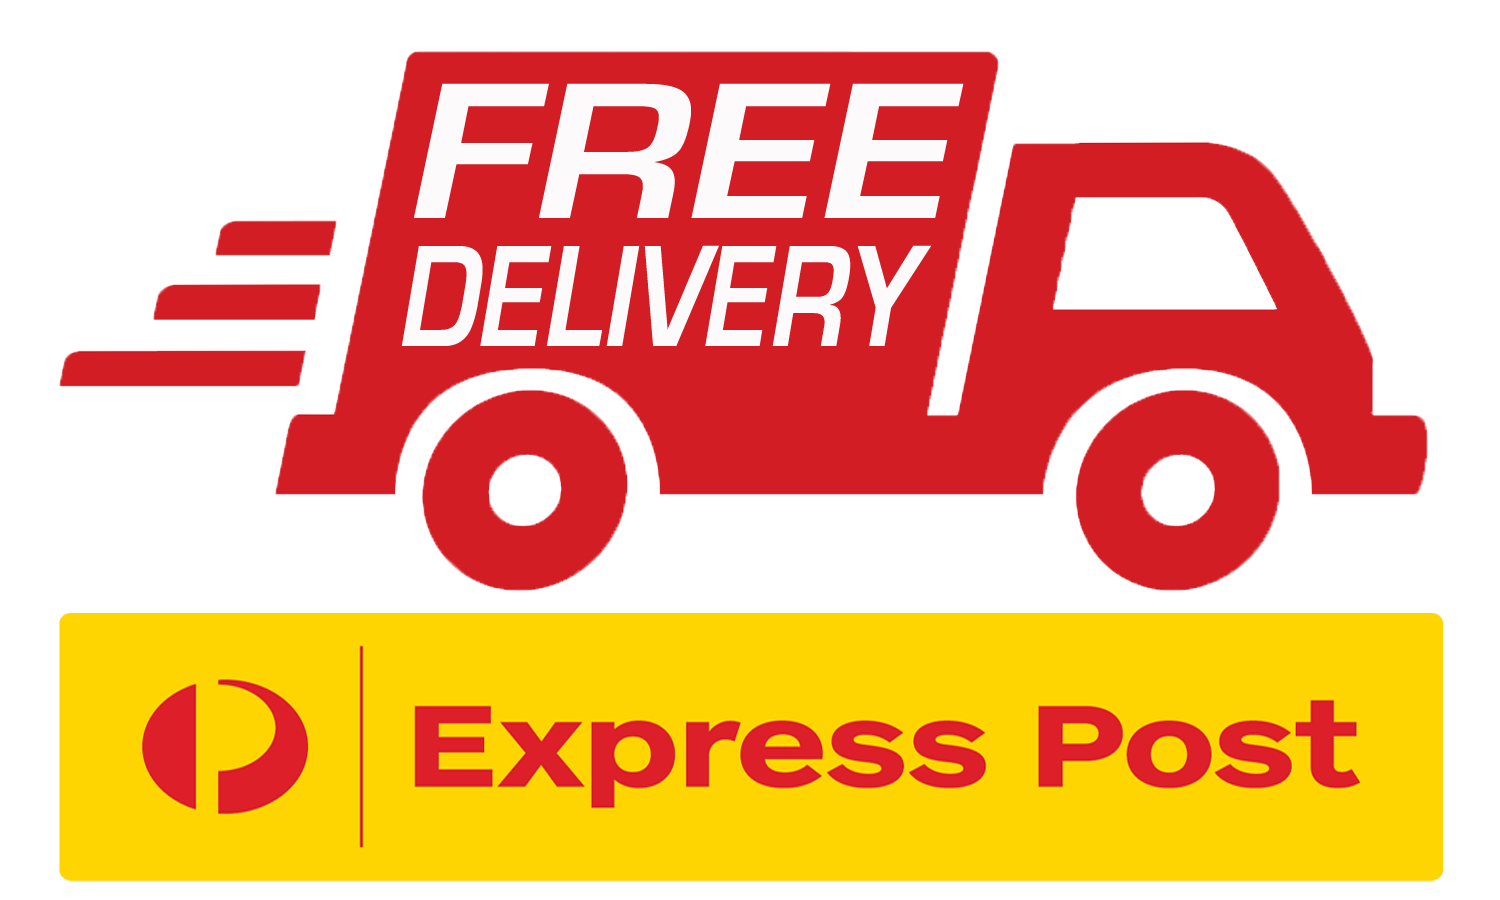 Free Express Post Delivery